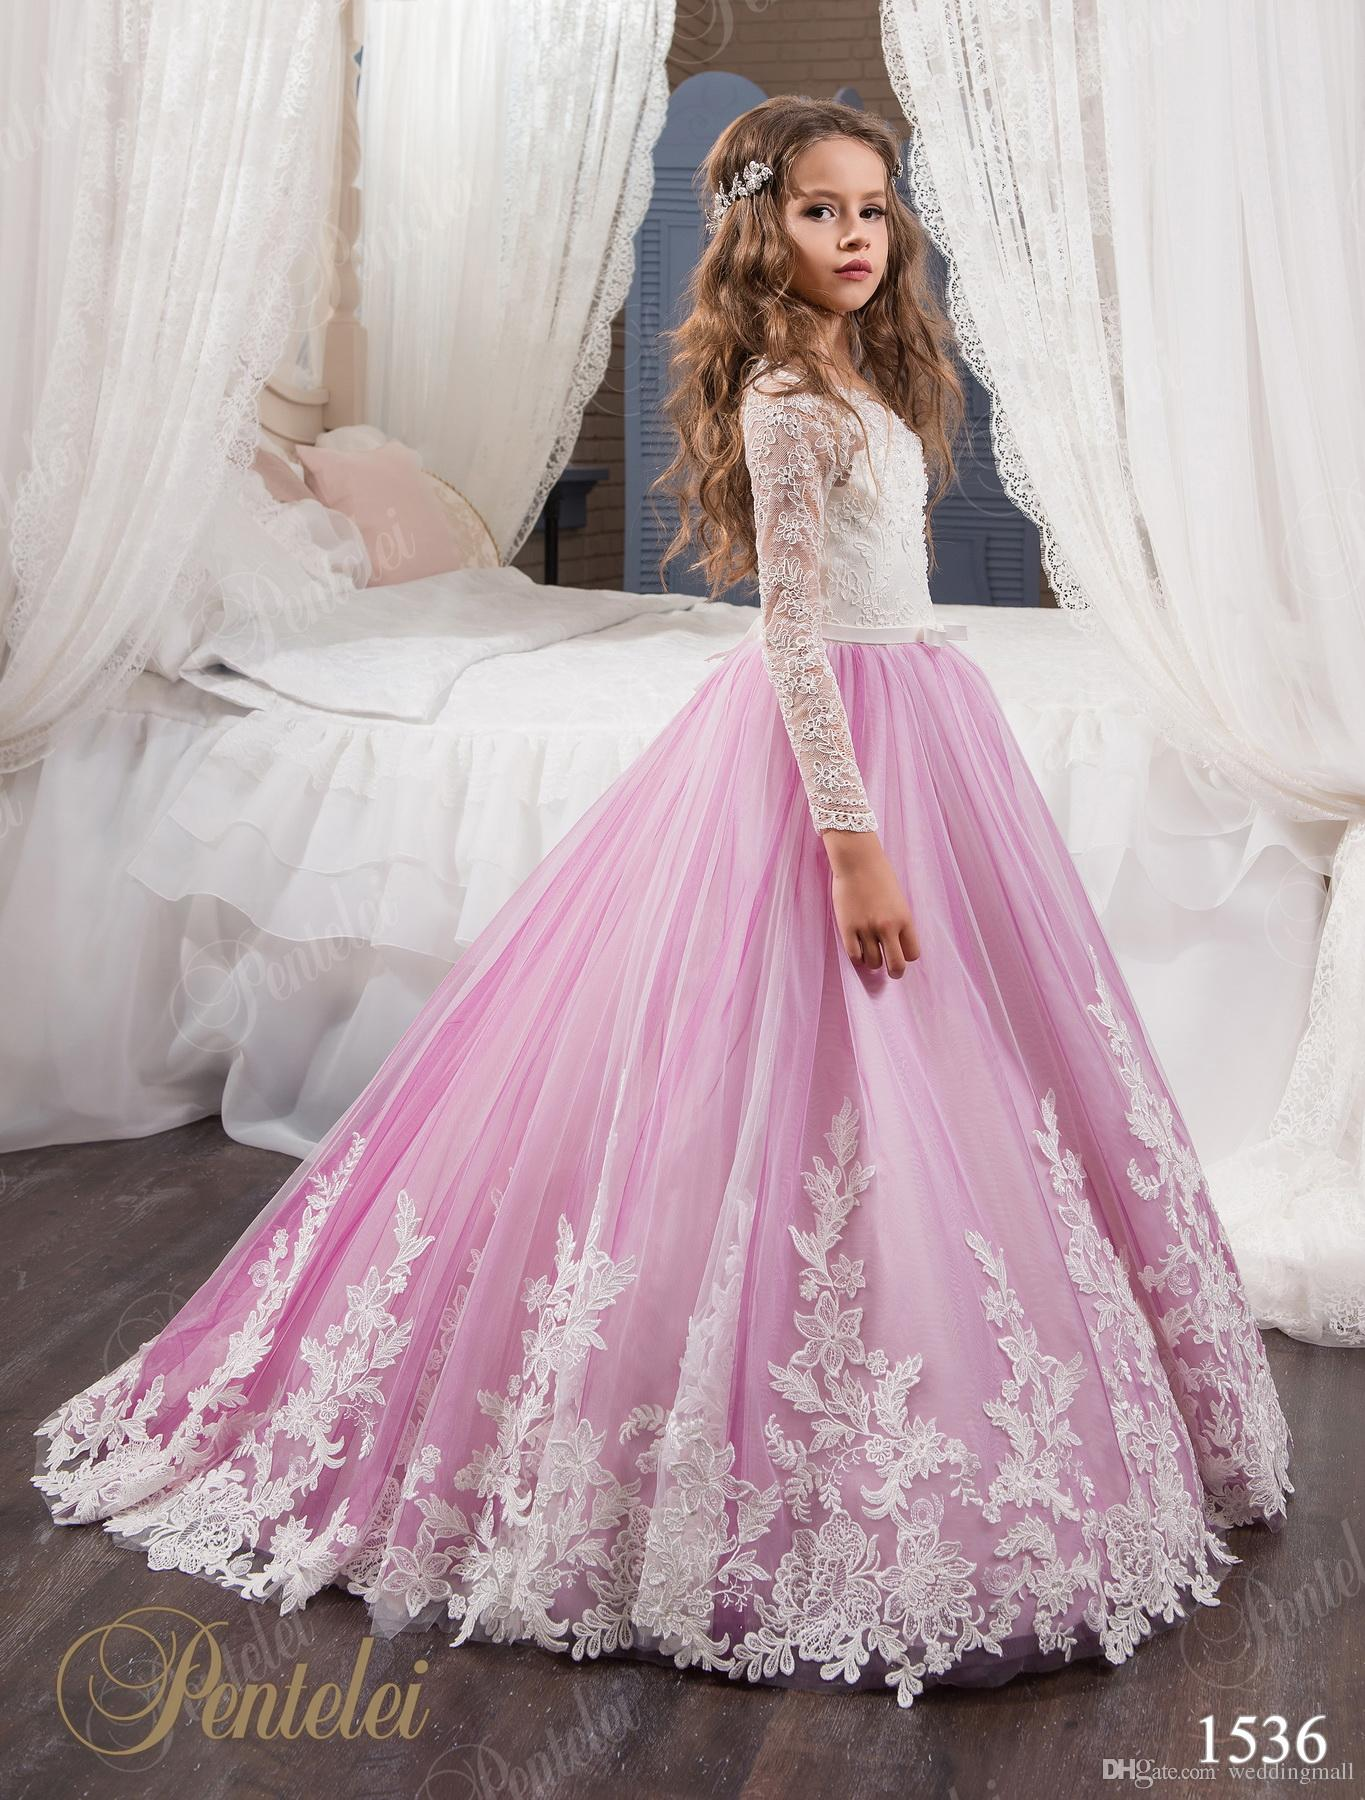 Vintage princess floral lace arabic 2017 flower girl dresses long vintage princess floral lace arabic 2017 flower girl dresses long sleeves tulle child dresses beautiful flower girl wedding dresses f0678 flower girl ombrellifo Image collections